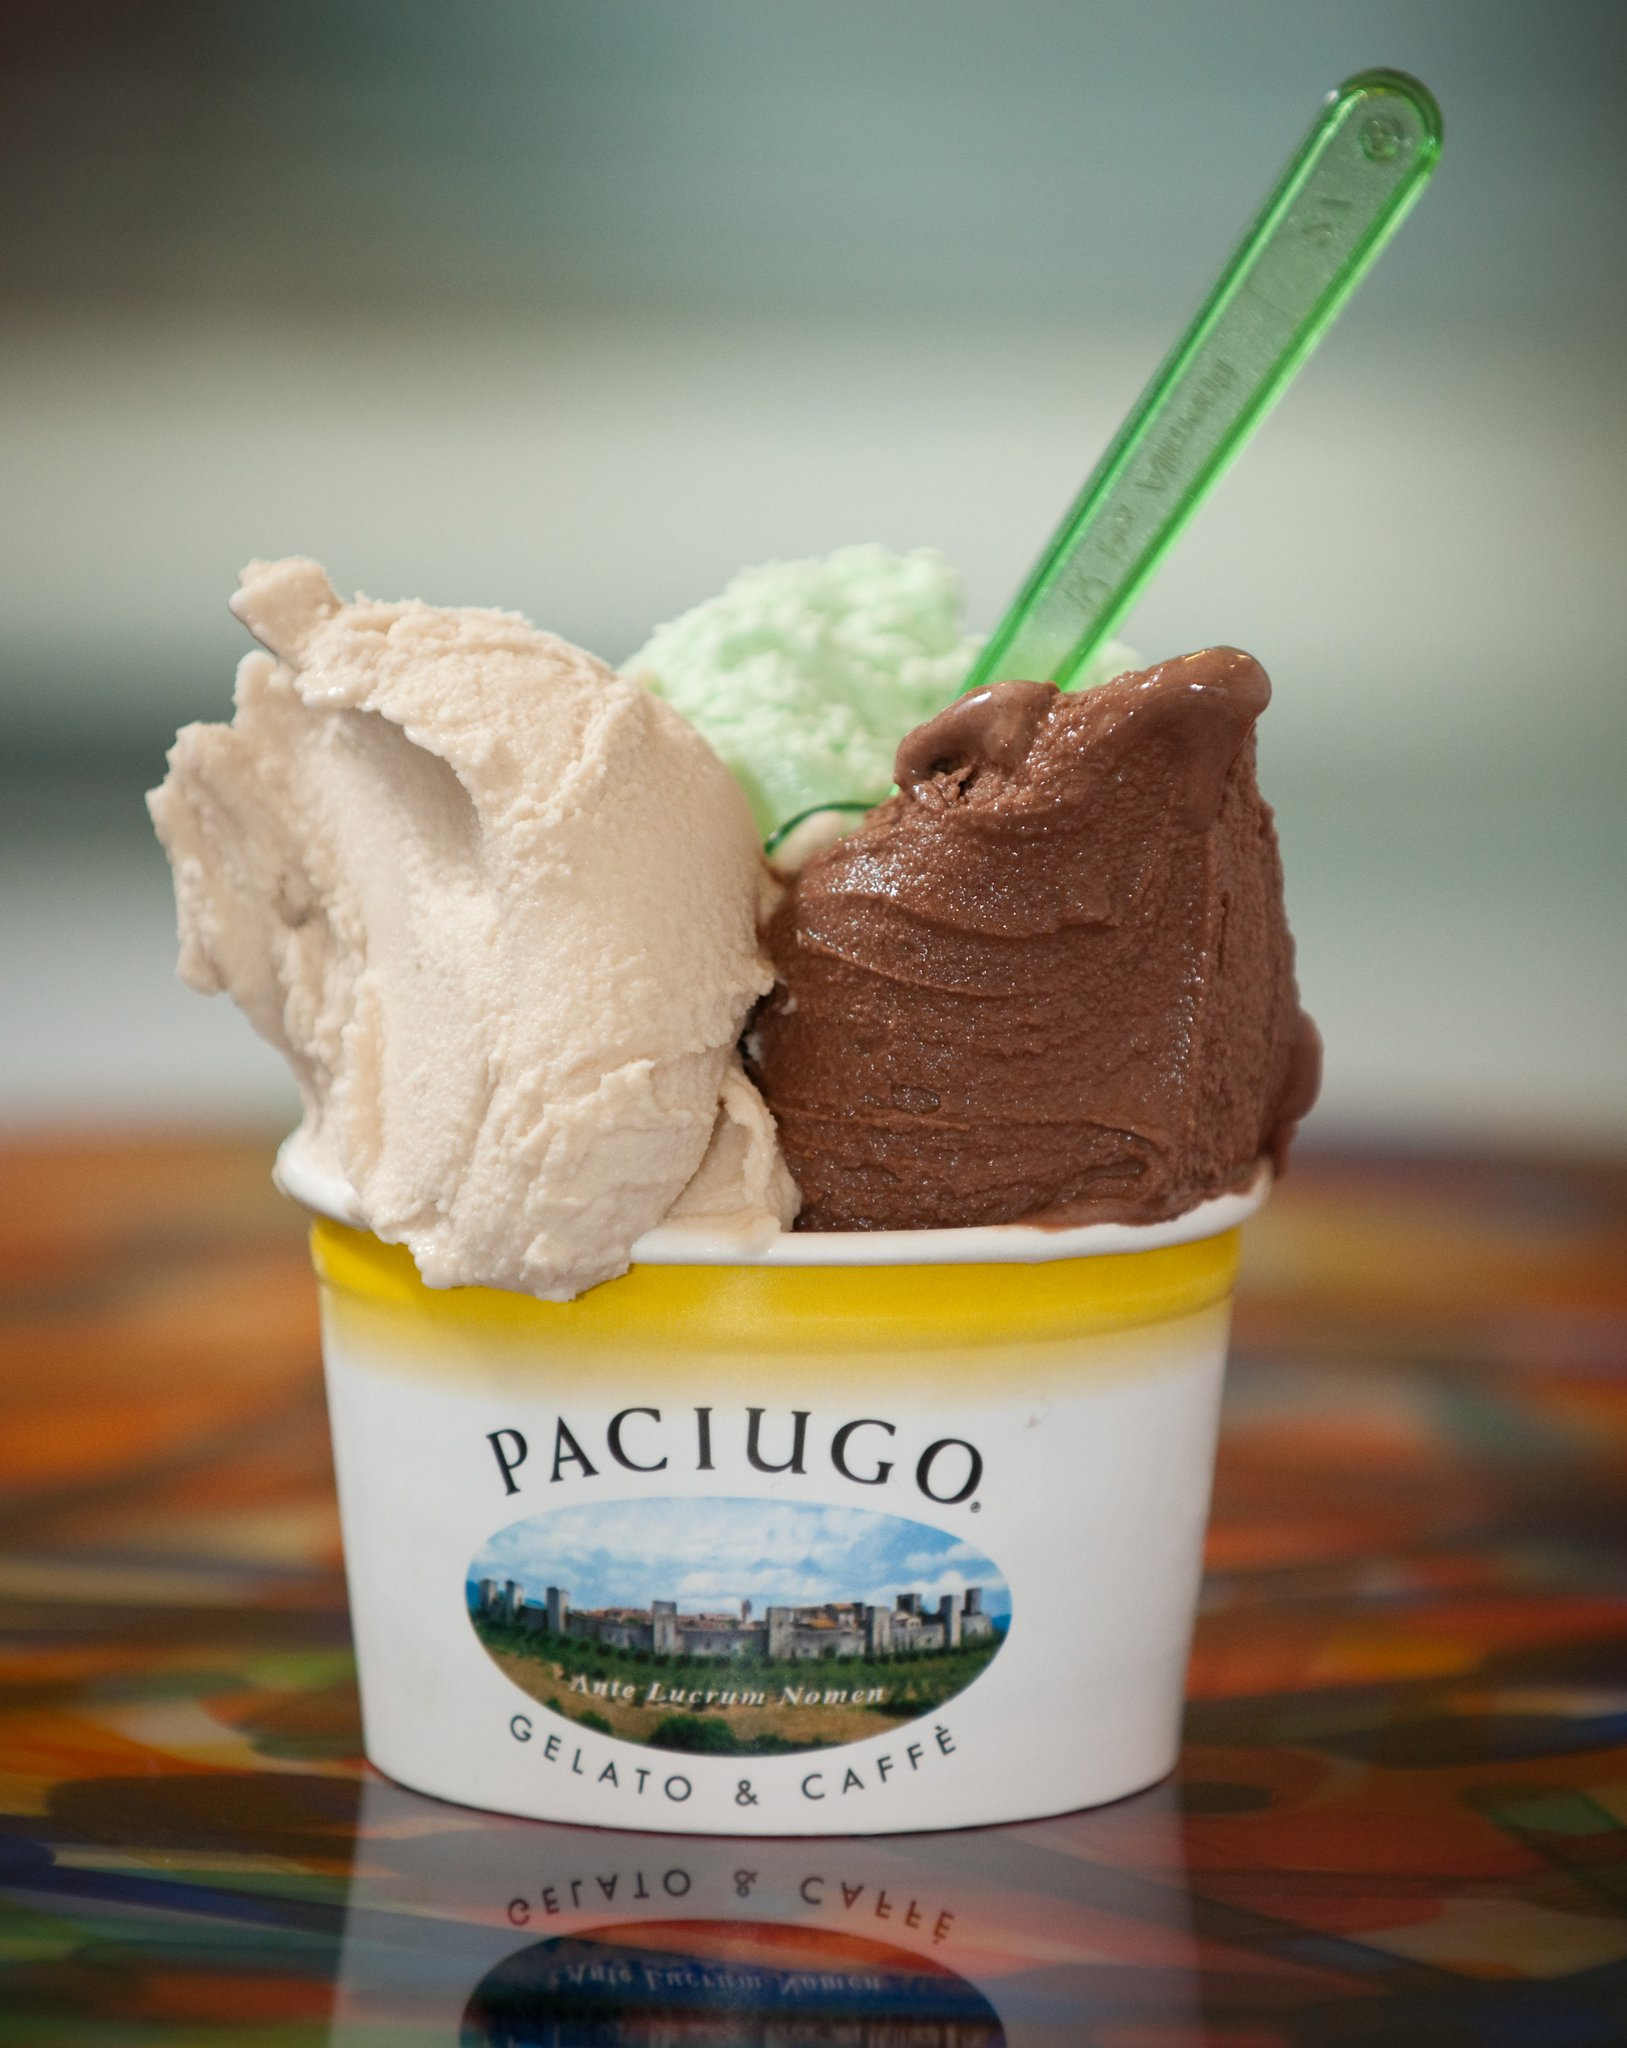 gelato Archives - BCW Global Business Opportunities